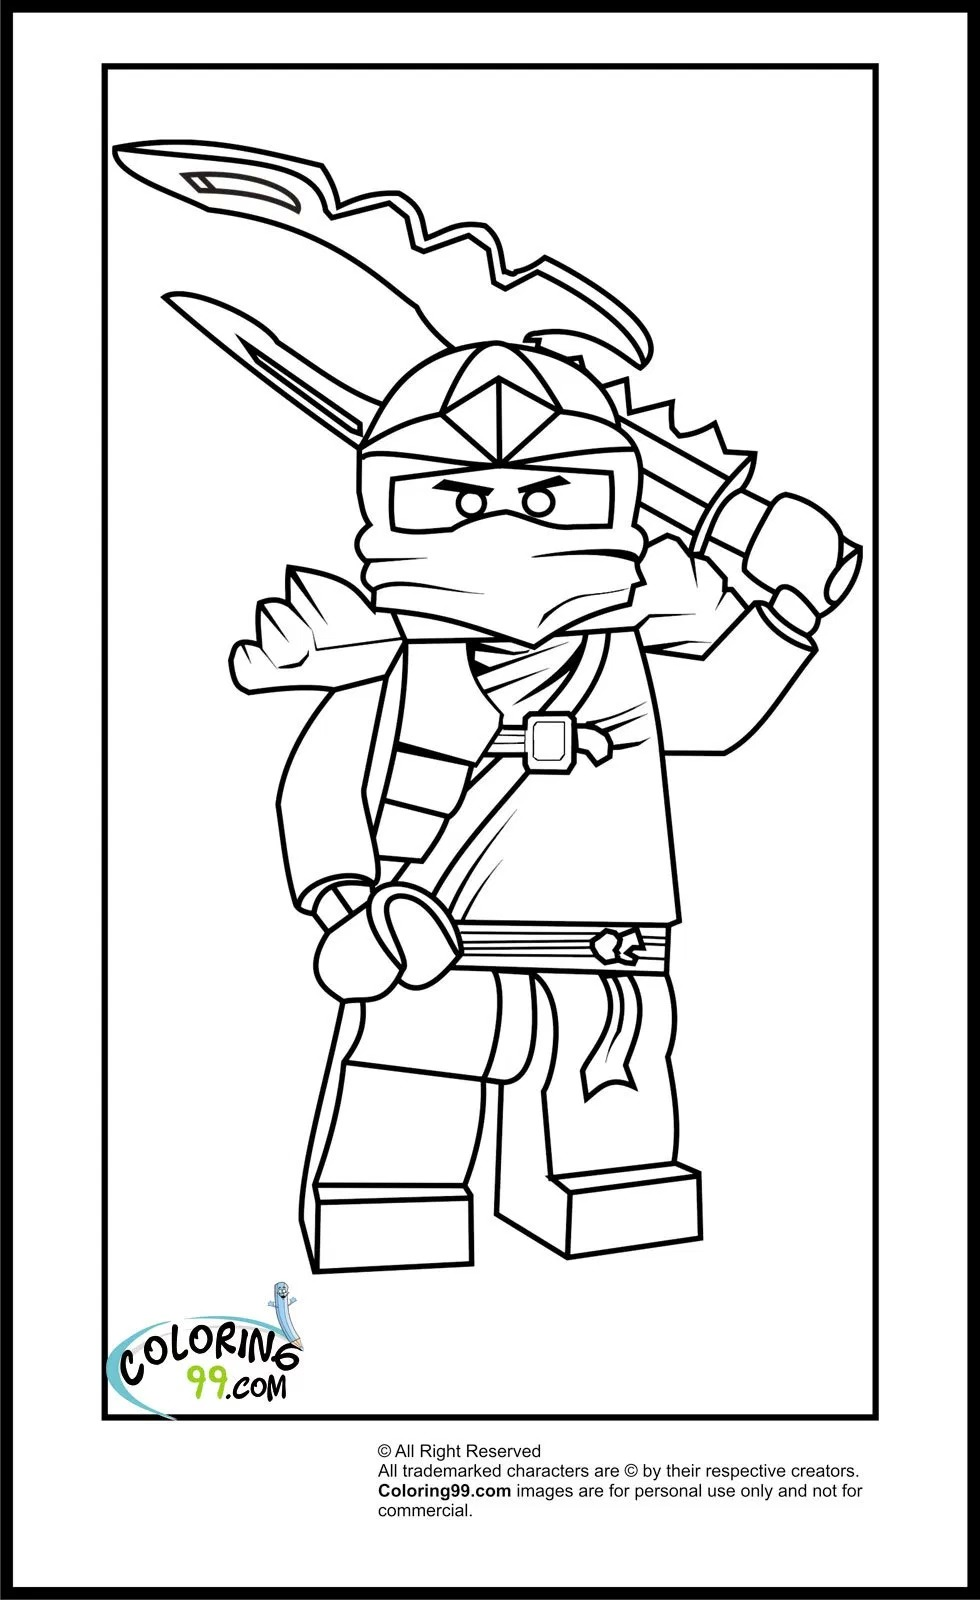 Roblox Drawing At Getdrawings Com Free For Personal Use Roblox